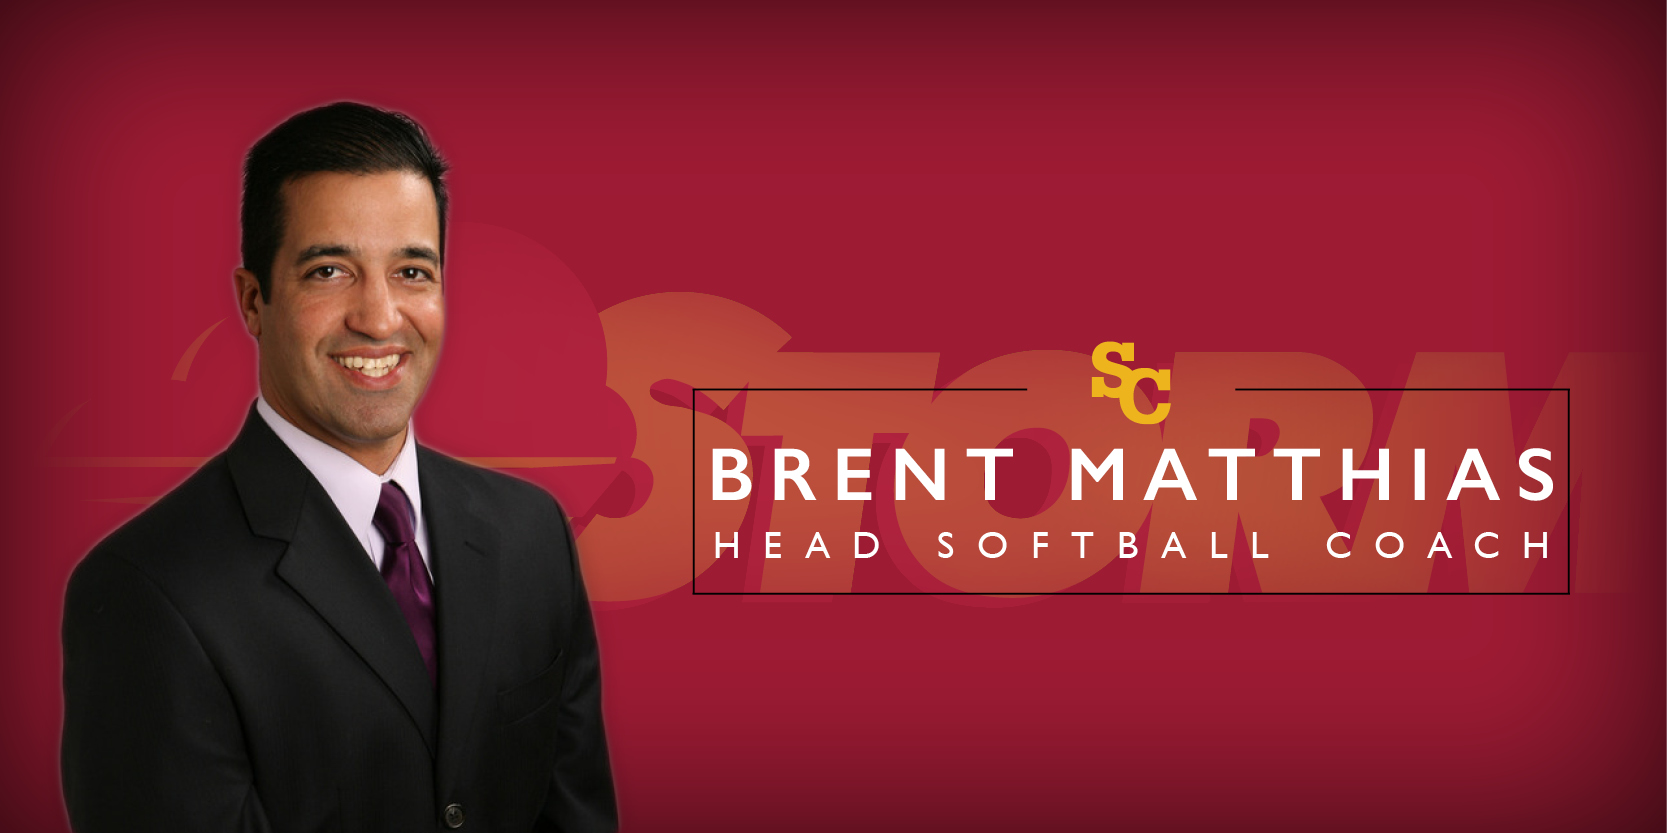 Brent Matthias hired as head softball coach